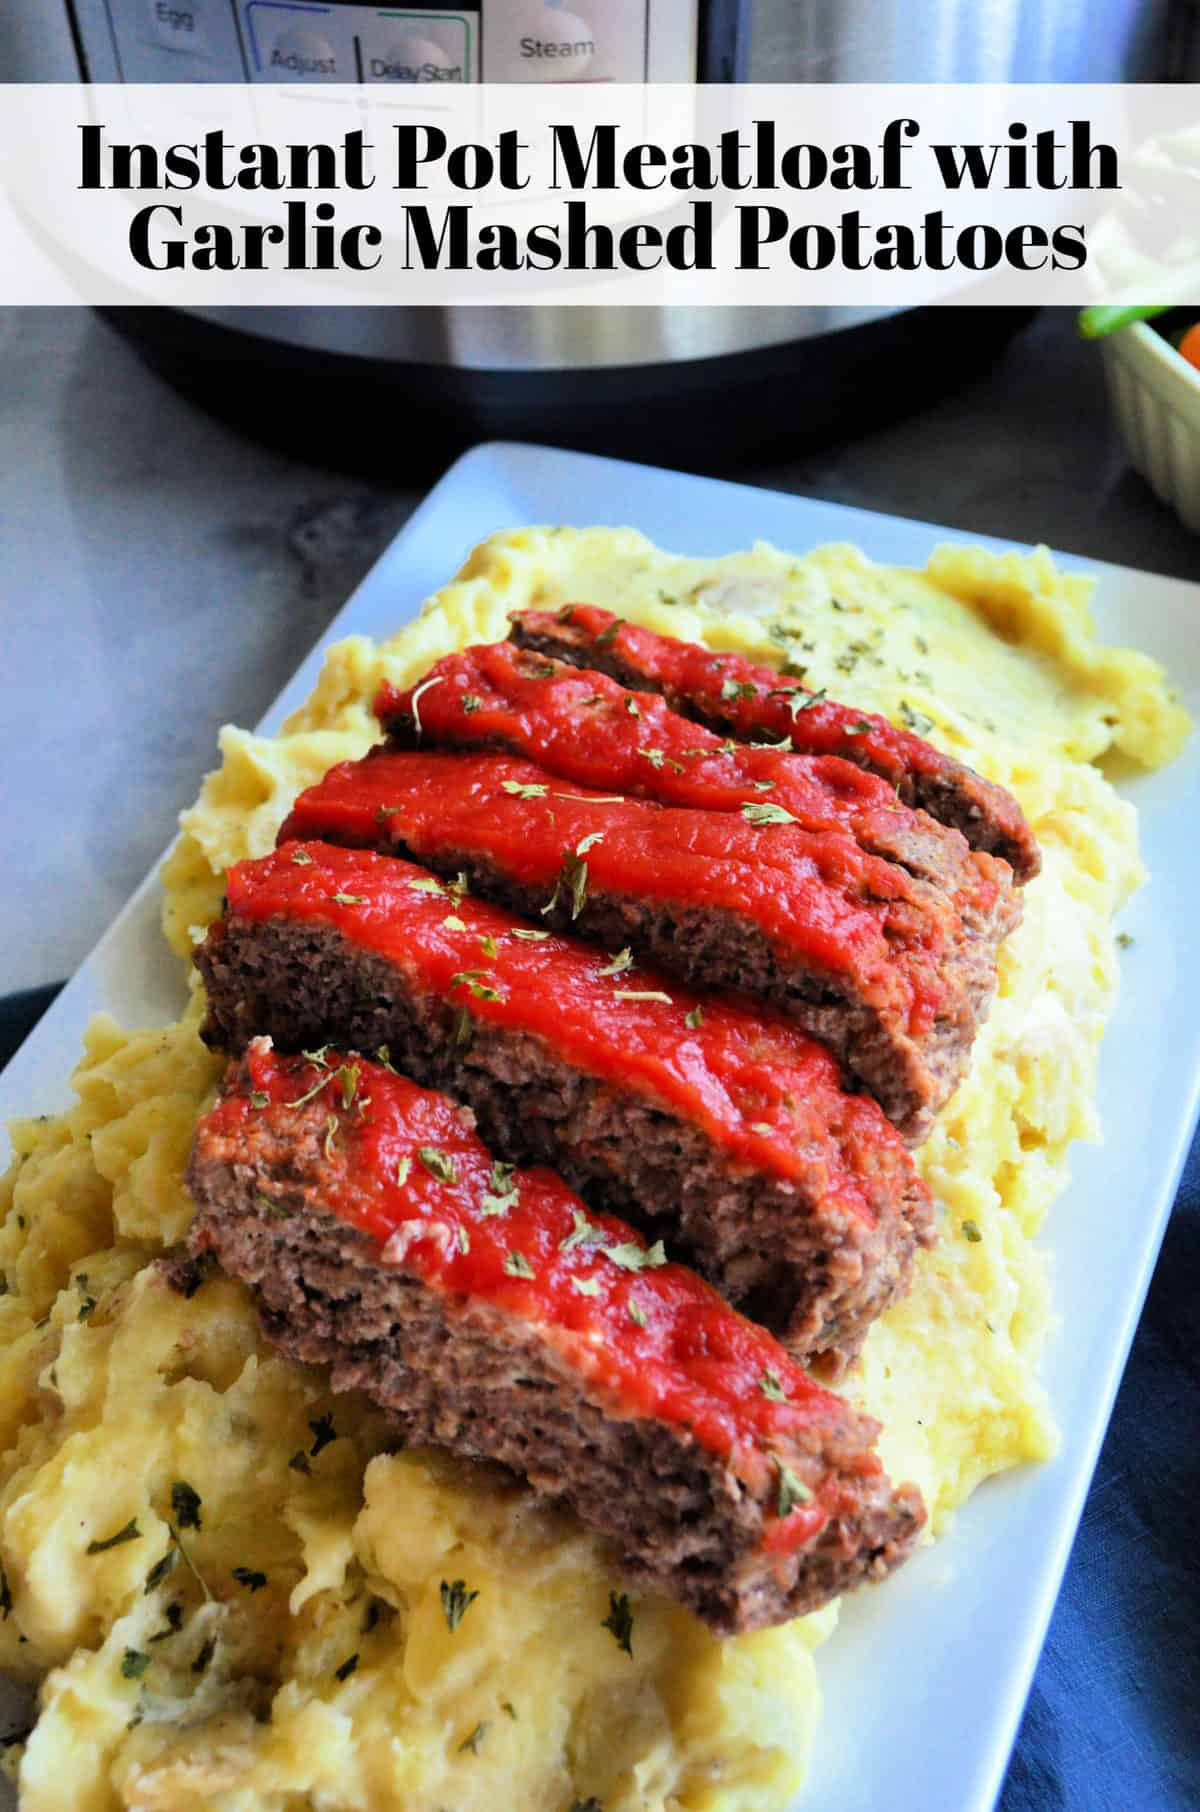 platter sliced meatloaf topped with red sauce over bed of mashed potatoes with title text.